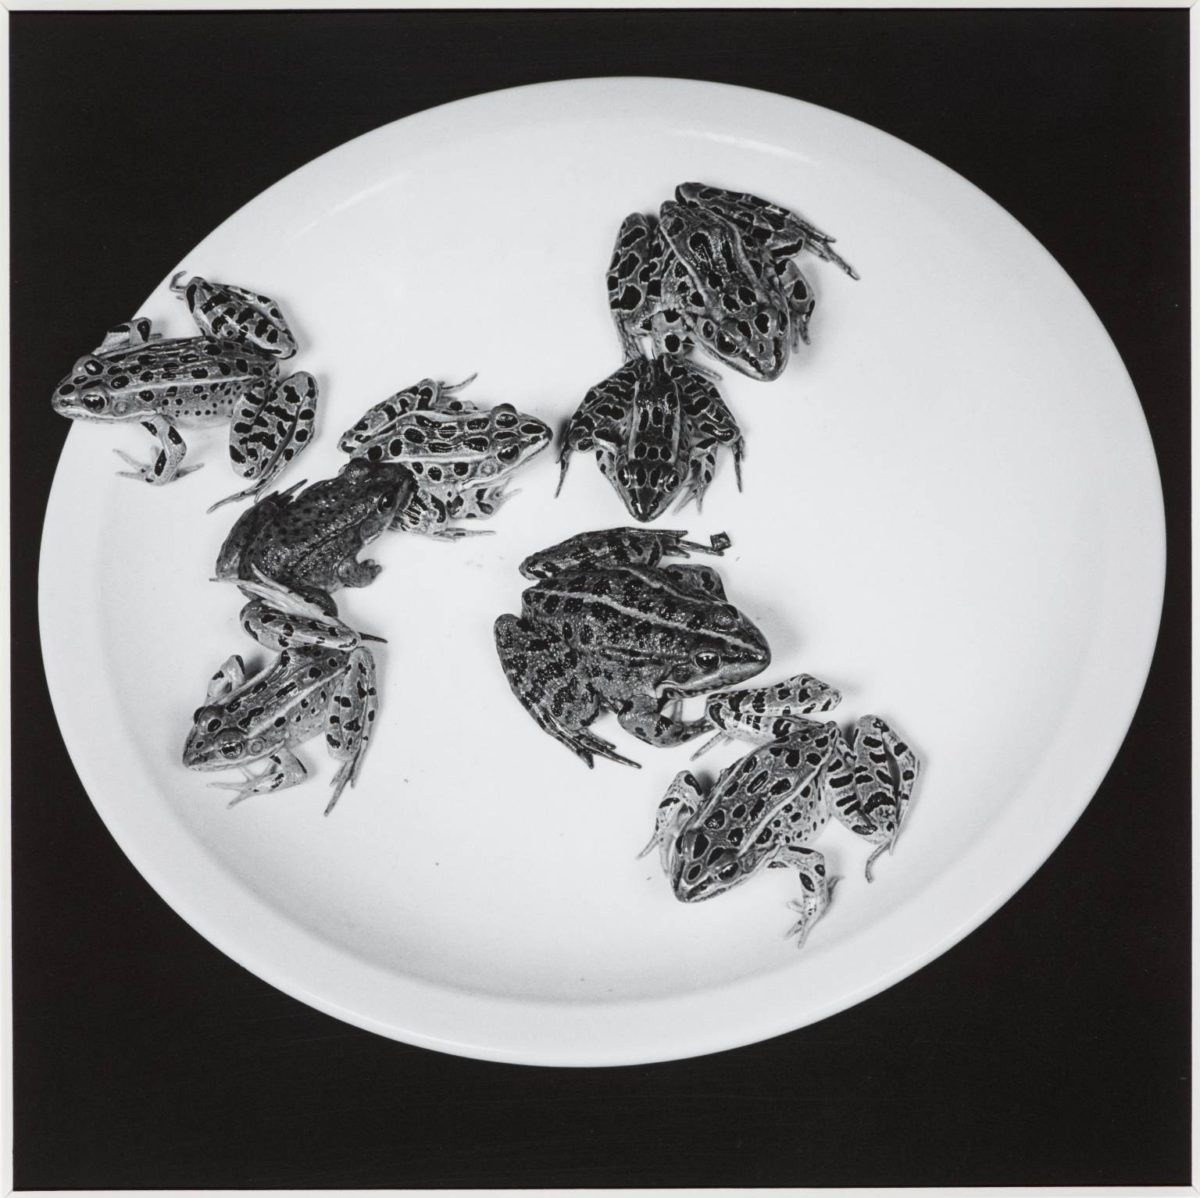 Frogs, 1984 - Robert Mapplethorpe